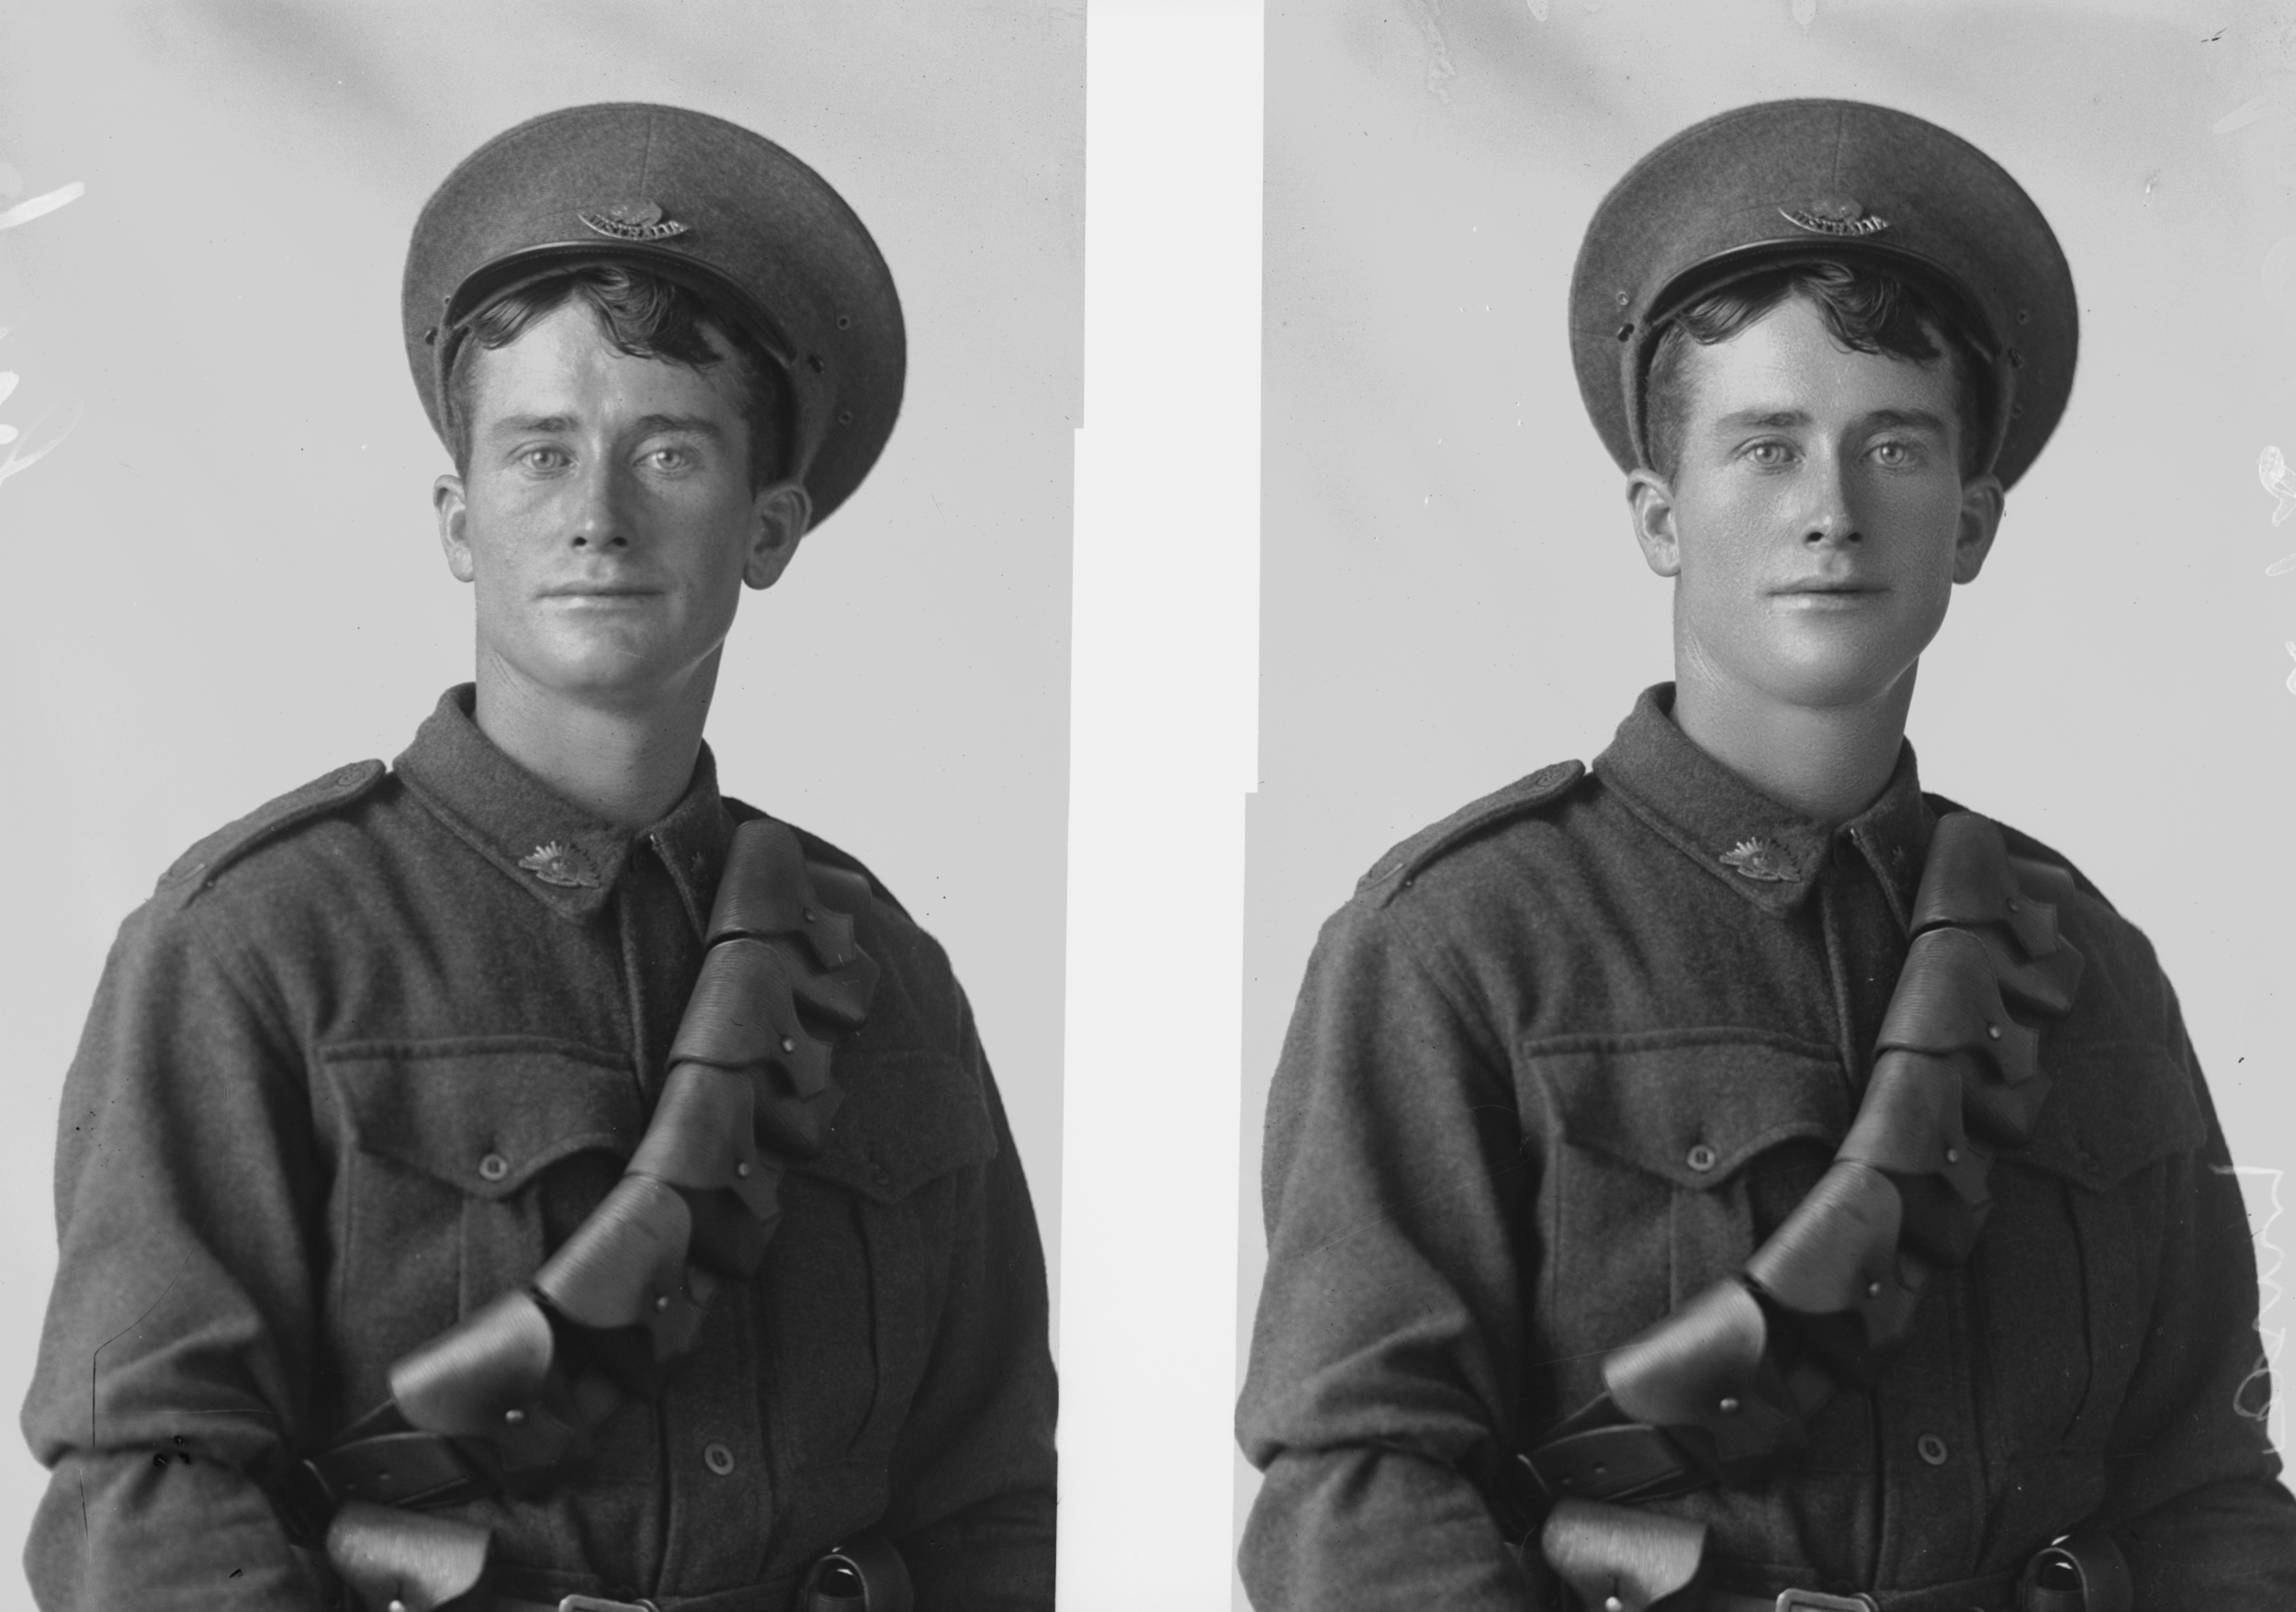 Photographed at the Dease Studio, 117 Barrack Street Perth WA Image courtesy of the State Library of Western Australia: 108629PD